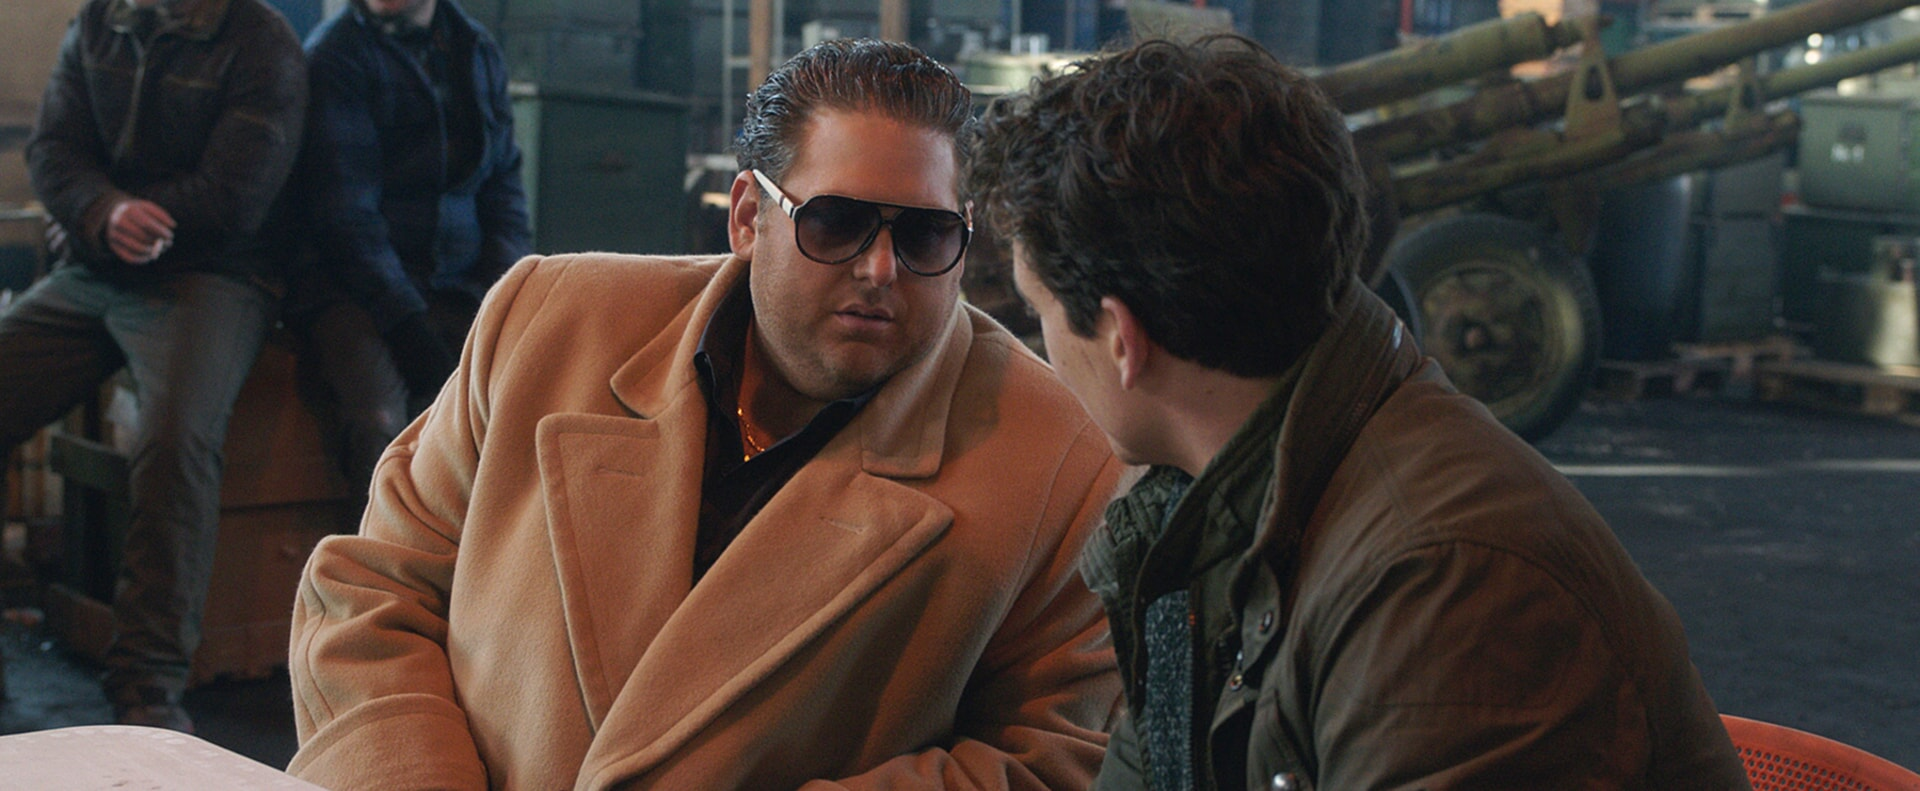 """JONAH HILL as Efraim and MILES TELLER as David in Warner Bros. Pictures' comedic drama (based on true events) """"WAR DOGS,"""" a Warner Bros. Pictures release."""